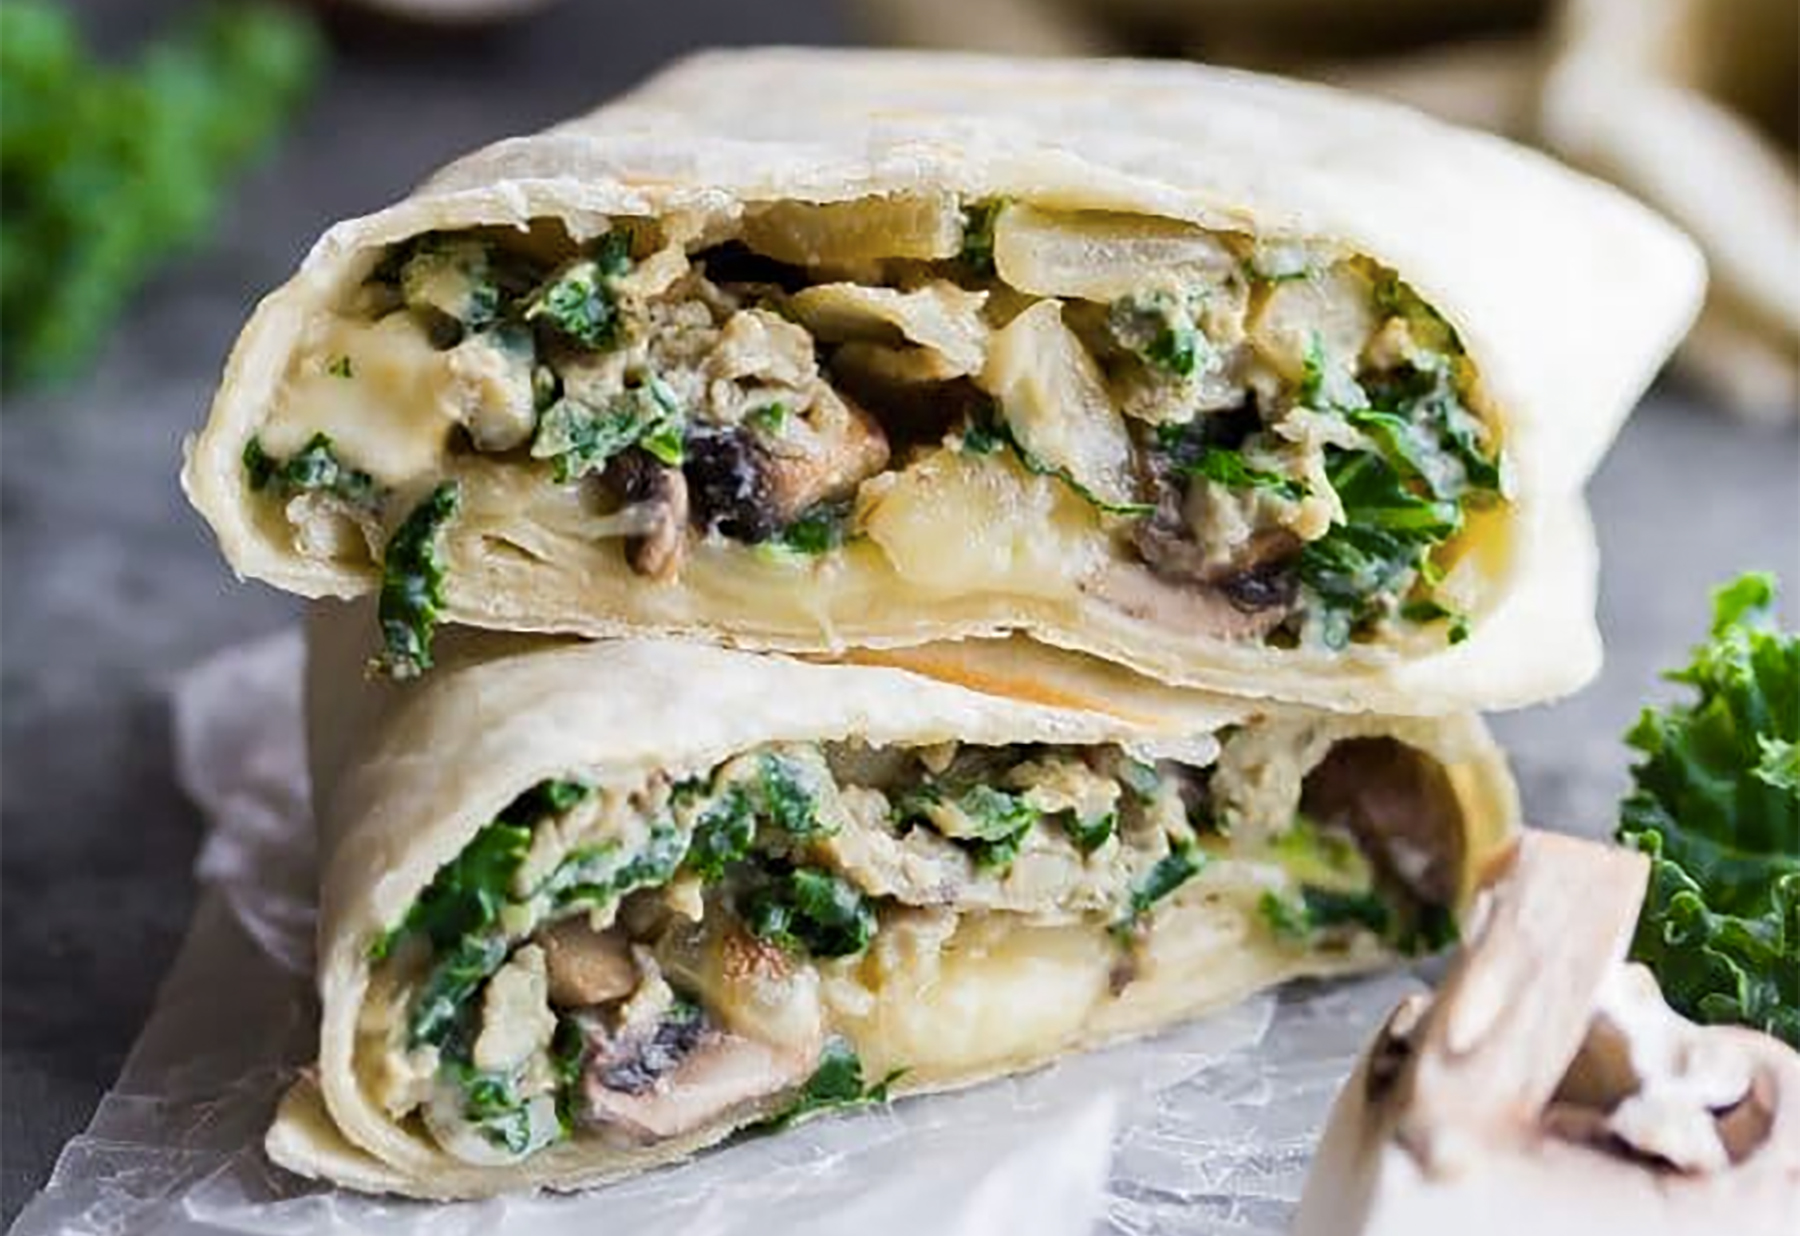 Breakfast Burritos to Meal-Prep for Easy Mornings